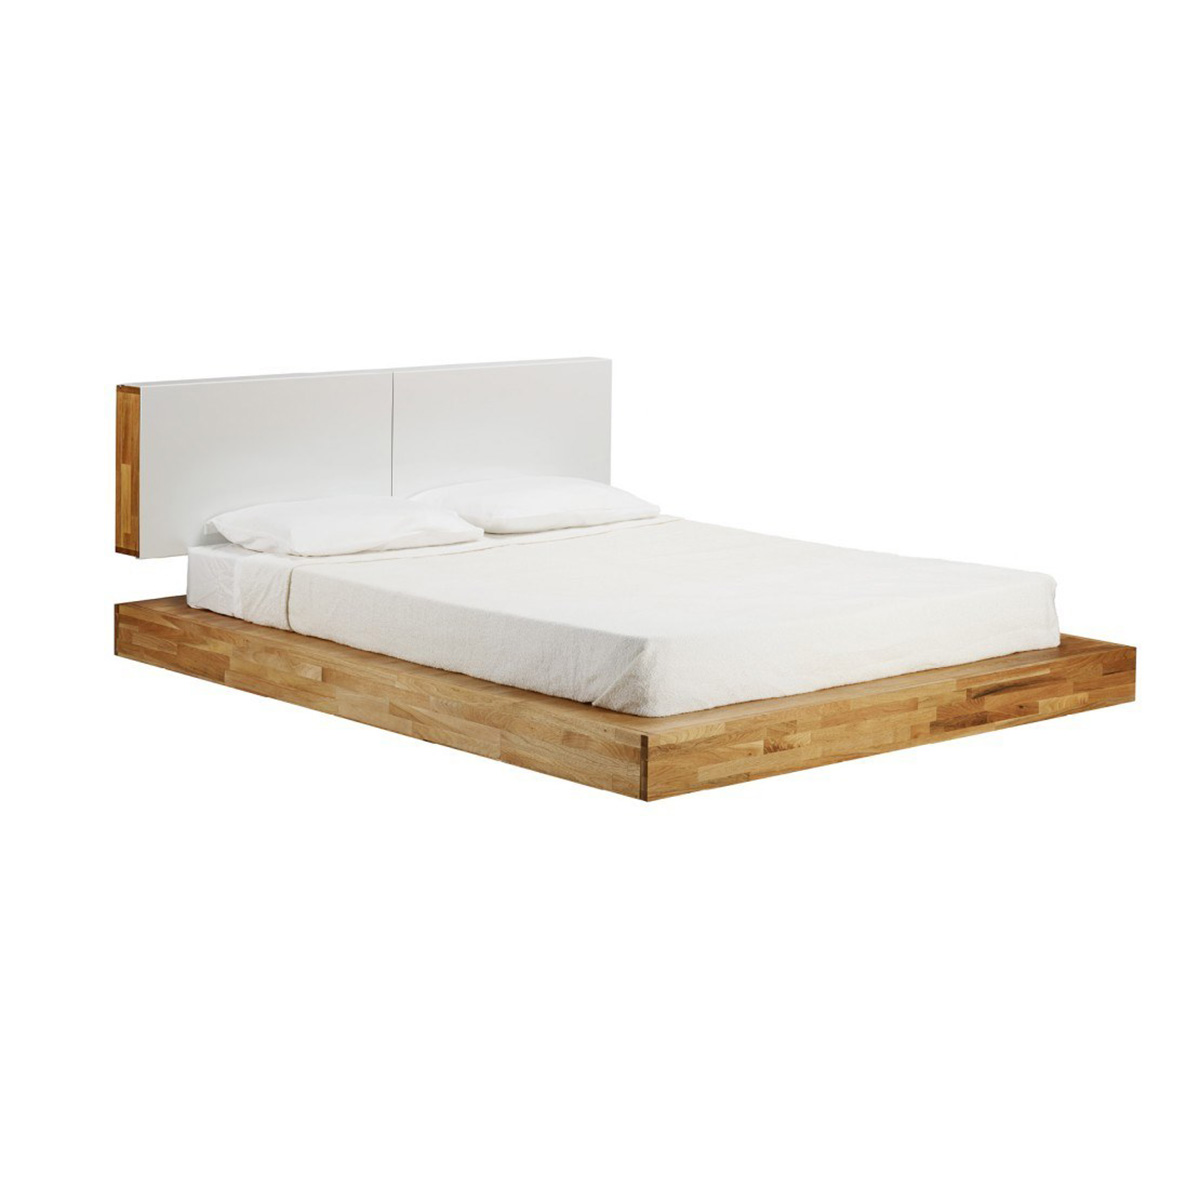 bed without headboard singapore image  magnificent bed frames  - lax series platform bed lax series platform bed